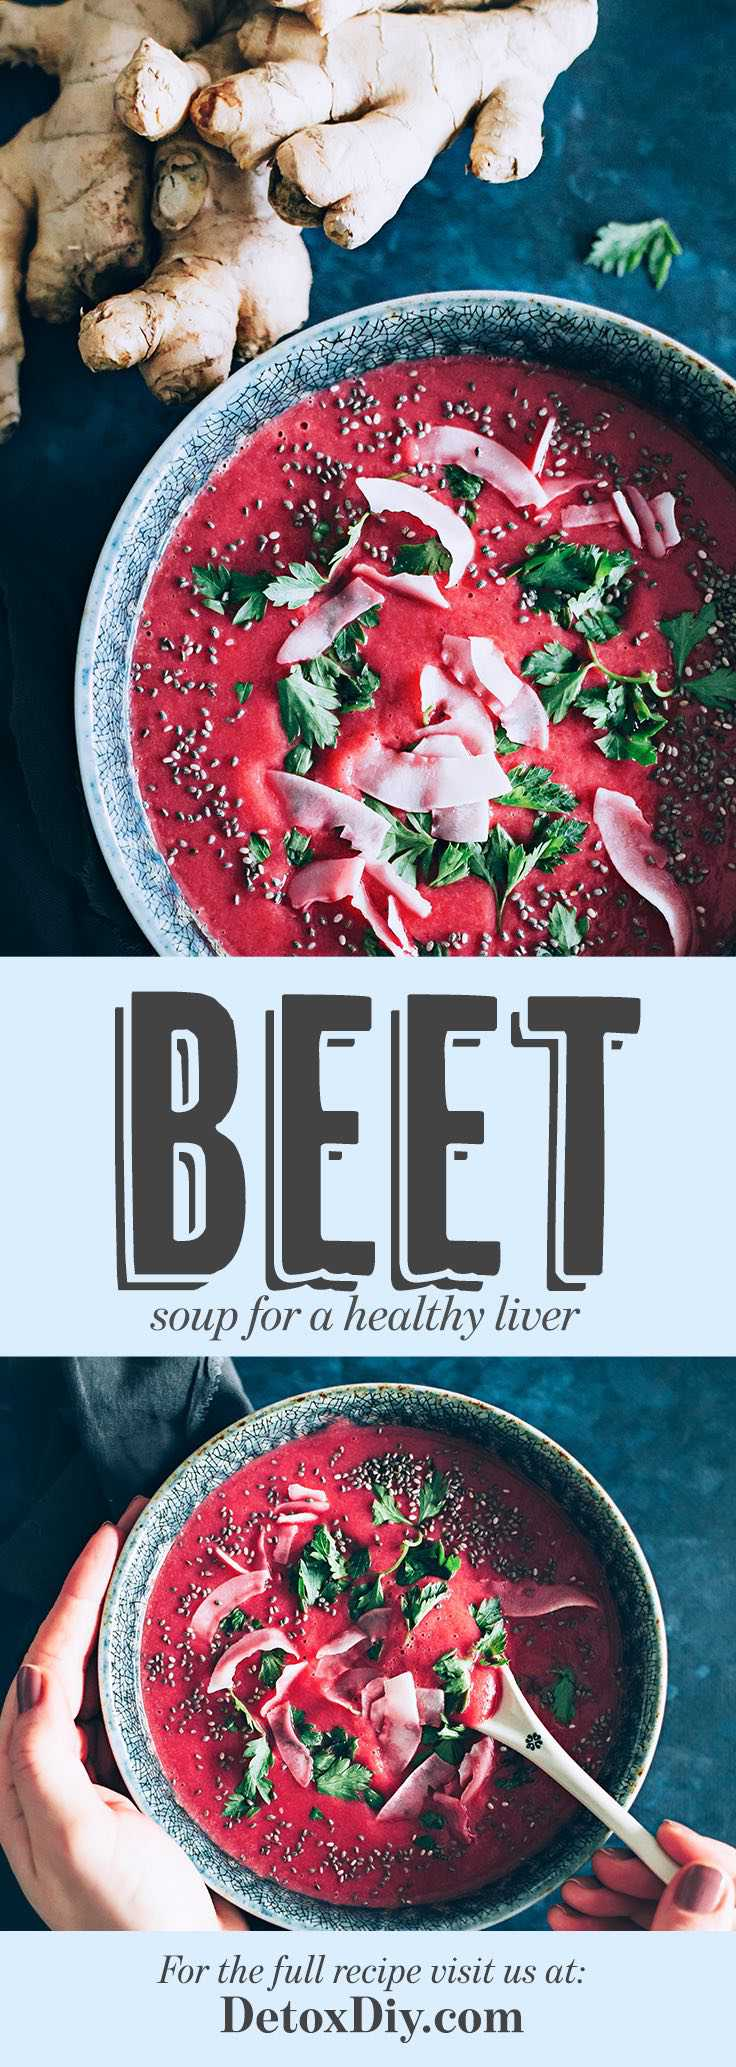 Ginger Beet Soup for Liver Health and Overall Wellness